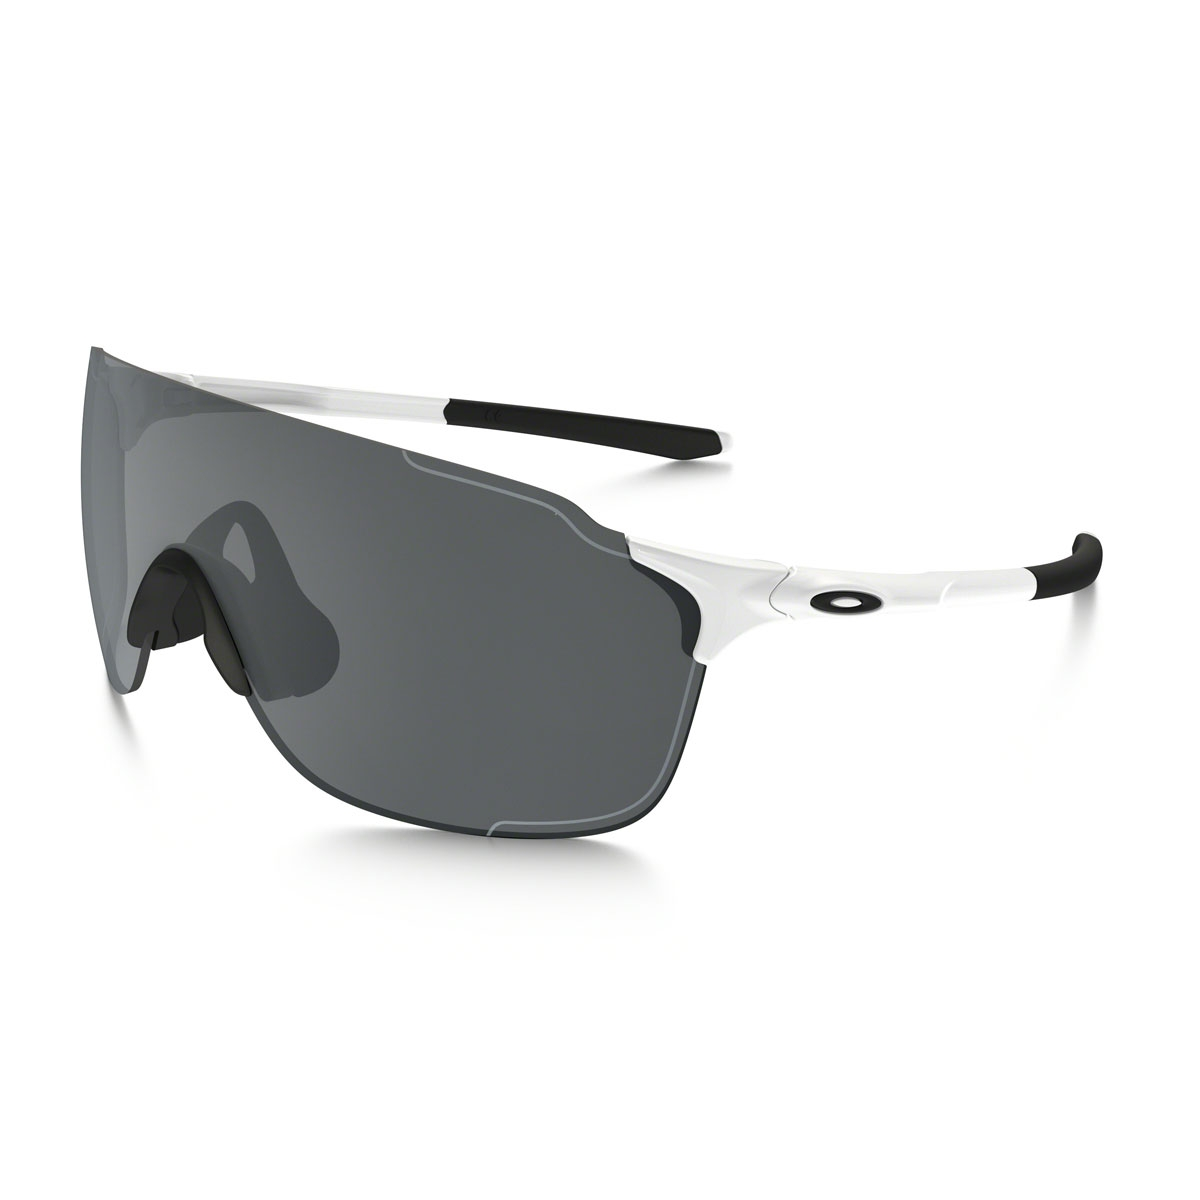 575a2ca2340 Image of Oakley EVZero Stride Sunglasses - Polished White Black Iridium